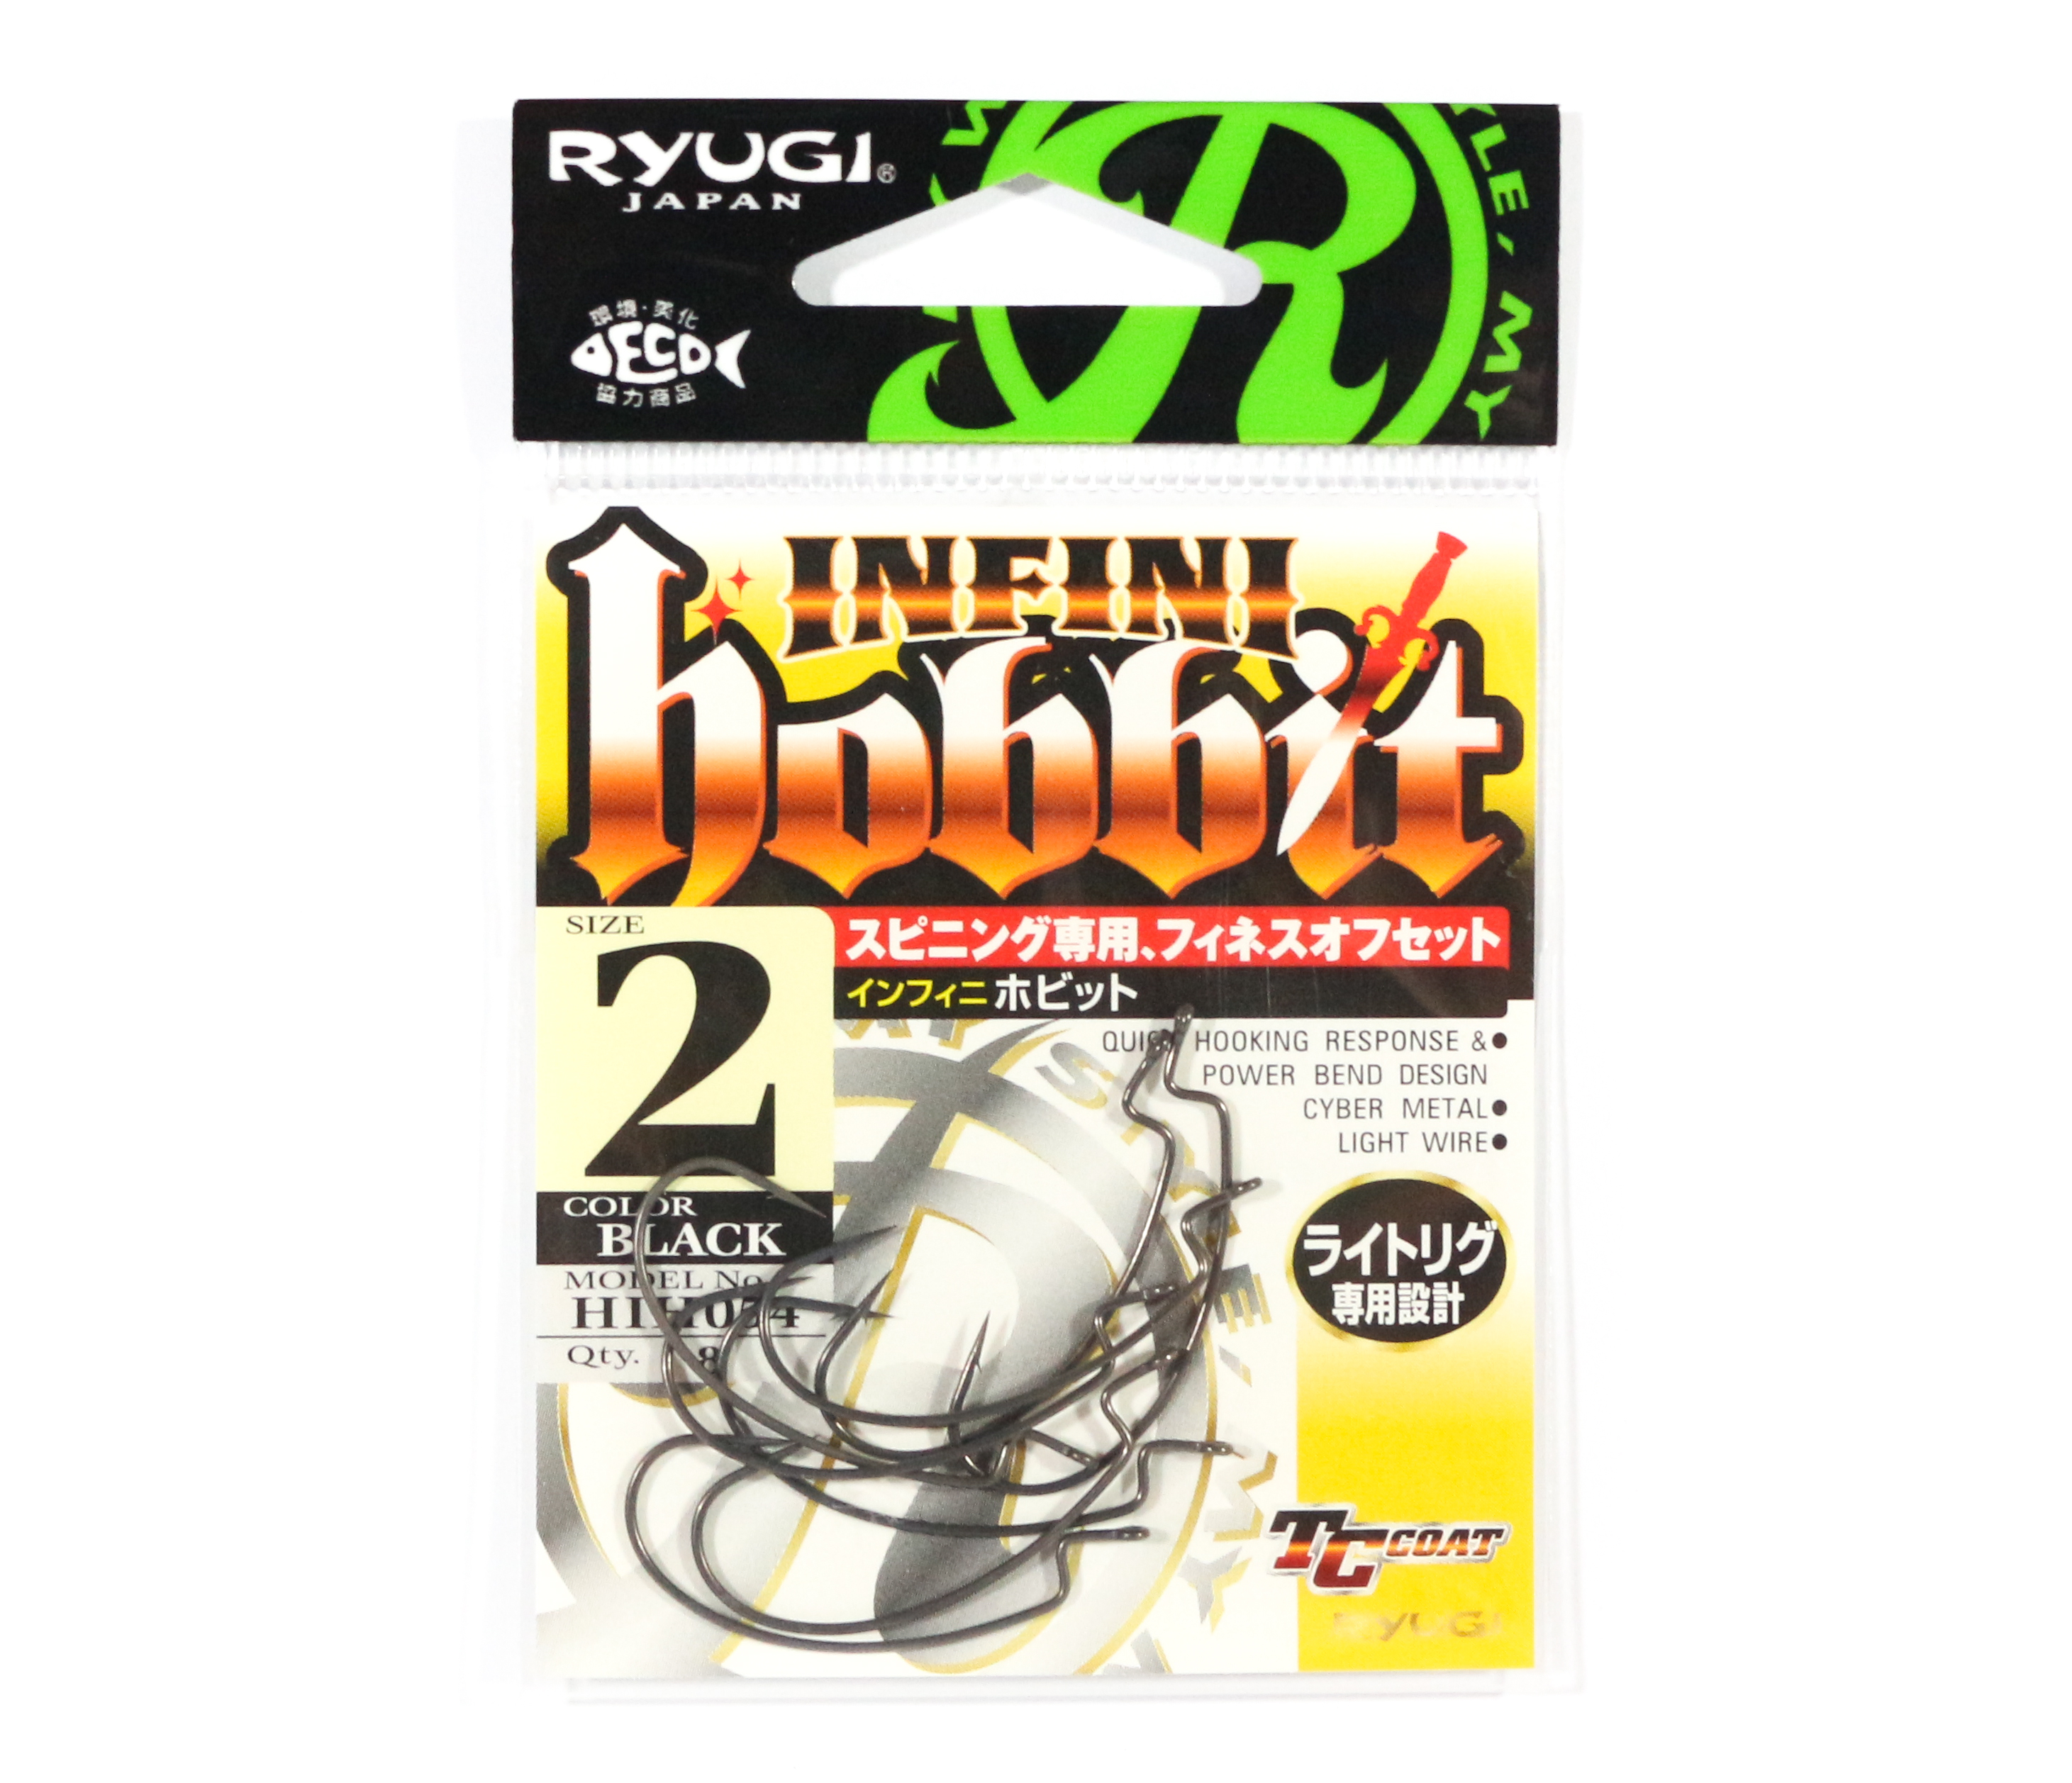 Ryugi HIH054 Infini Hobbit Light Wire Worm Hooks Size 2 (4221)